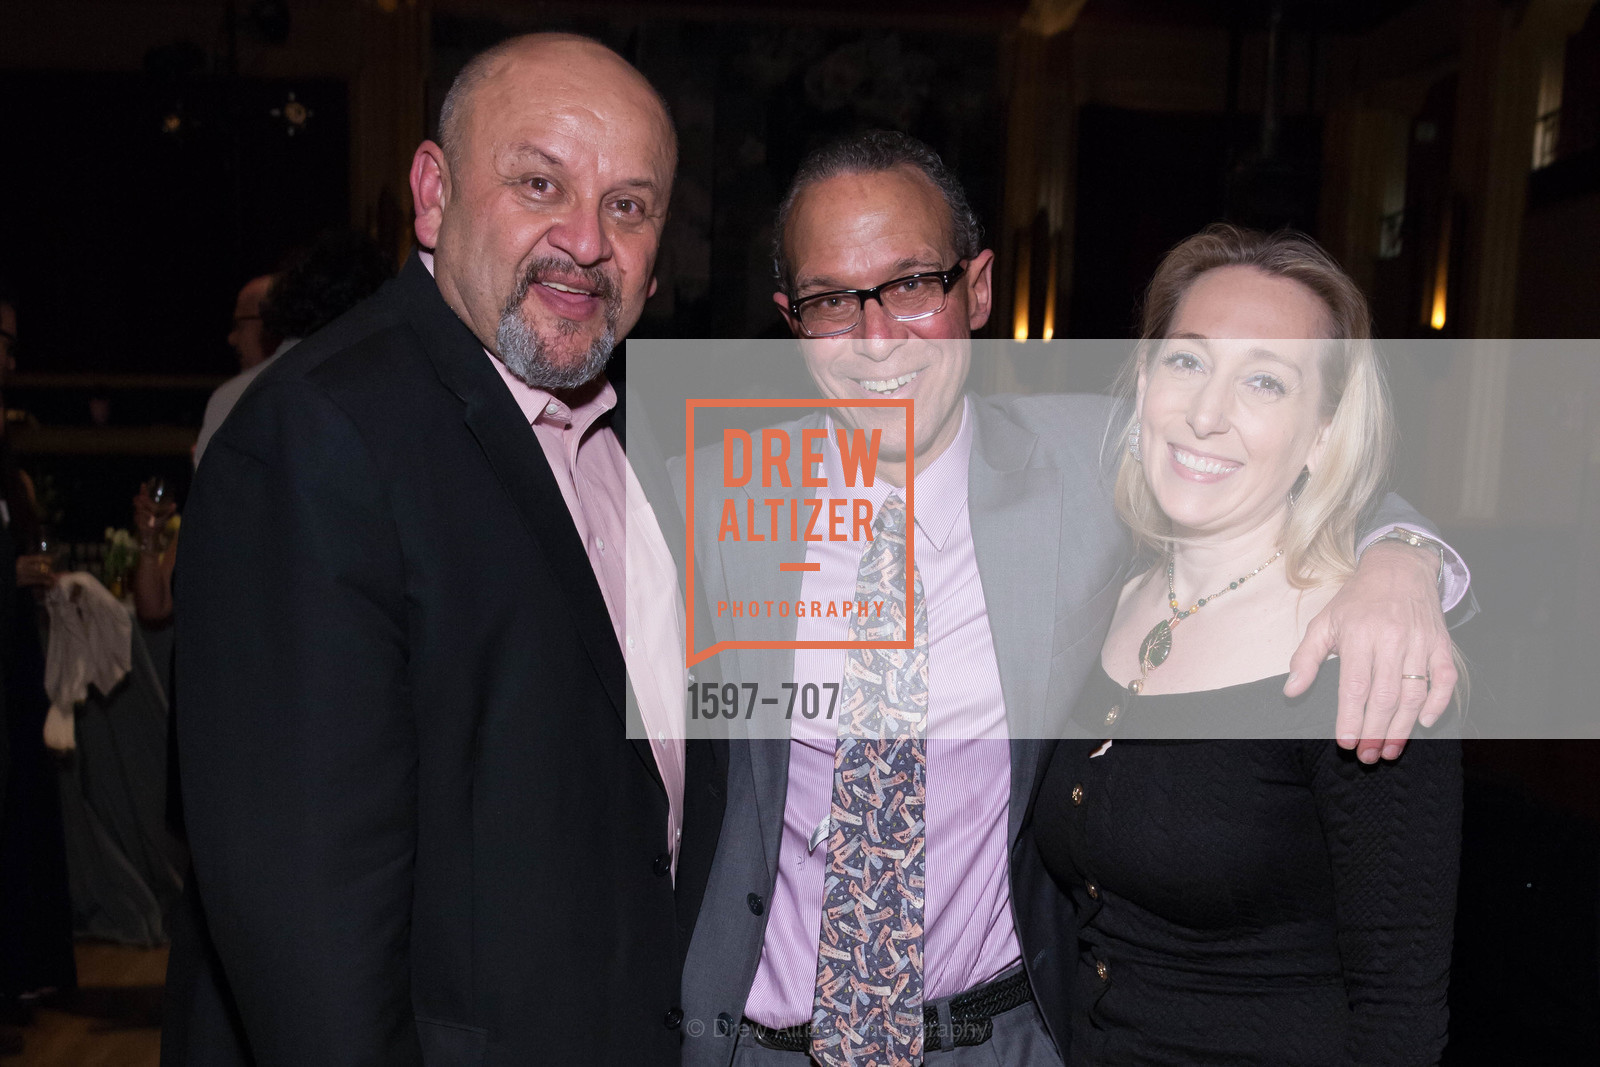 John Garcia, Don Harris, Krista Freelove, OAKLAND SCHOOL FOR THE ARTS Gala 2015 with Governor Jerry Brown, US, May 8th, 2015,Drew Altizer, Drew Altizer Photography, full-service agency, private events, San Francisco photographer, photographer california